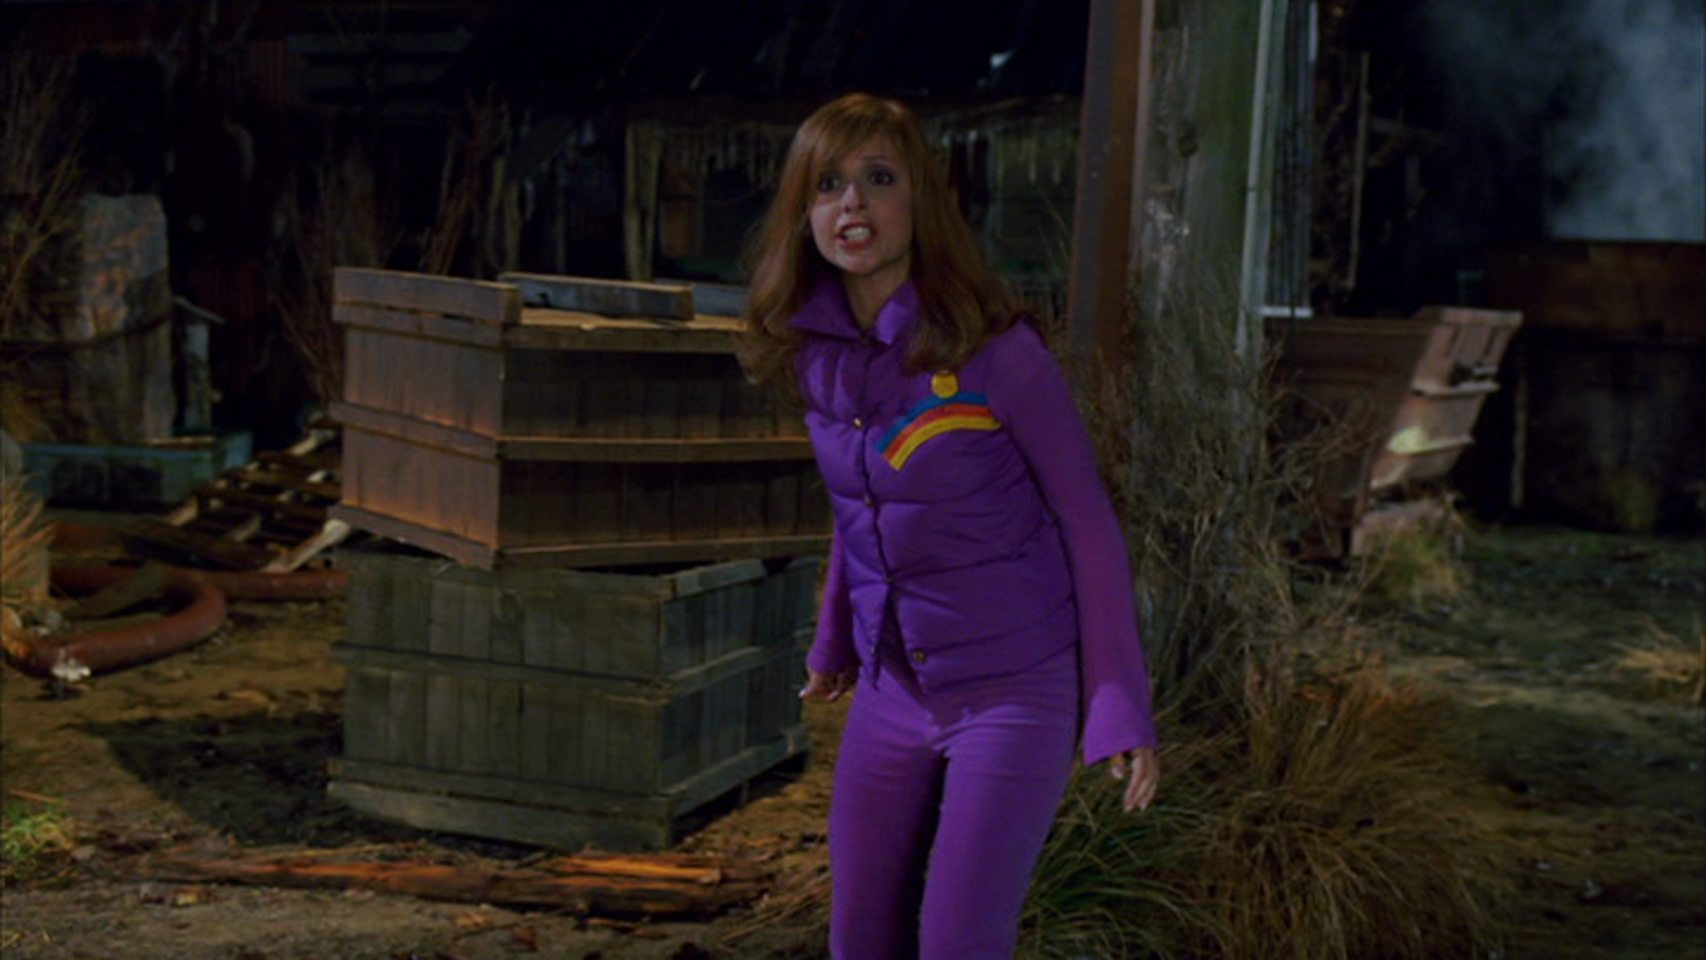 Daphne, Scooby Doo, Outfits, Ranked, Monsters Unleashed, Sarah Michelle Gellar